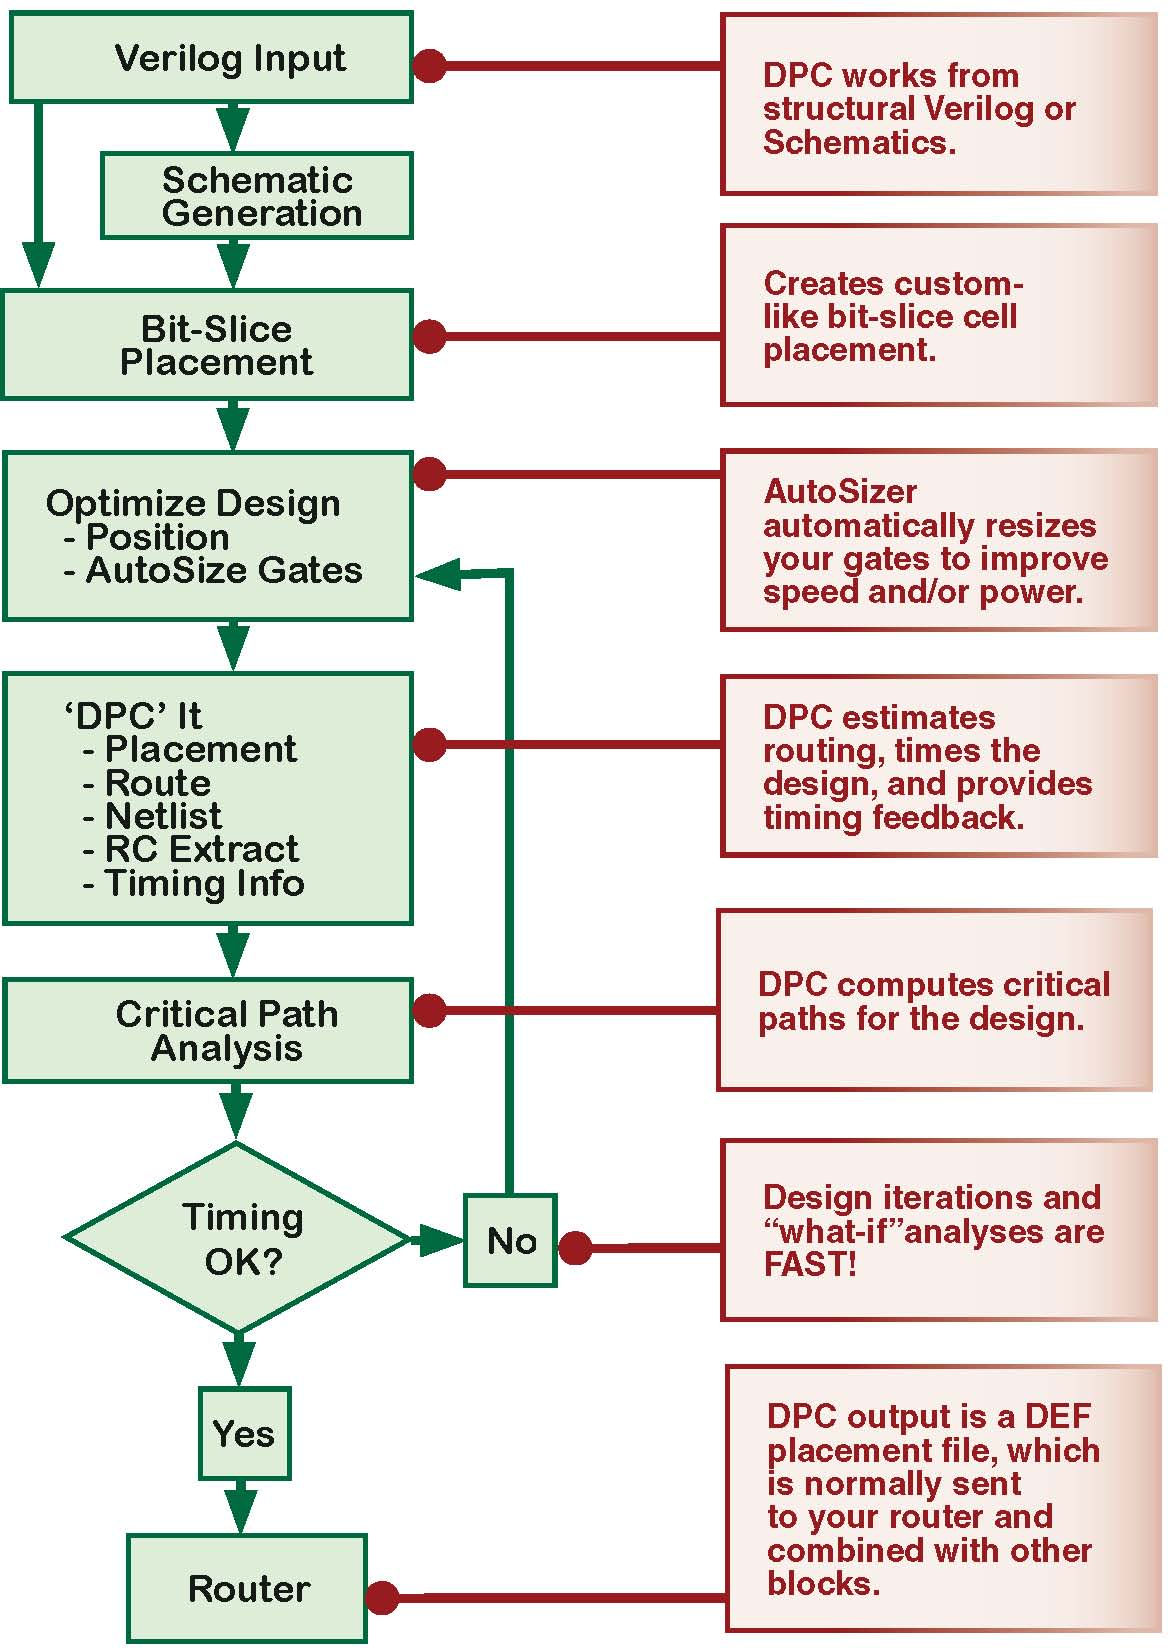 DPC-SUE Design Flow